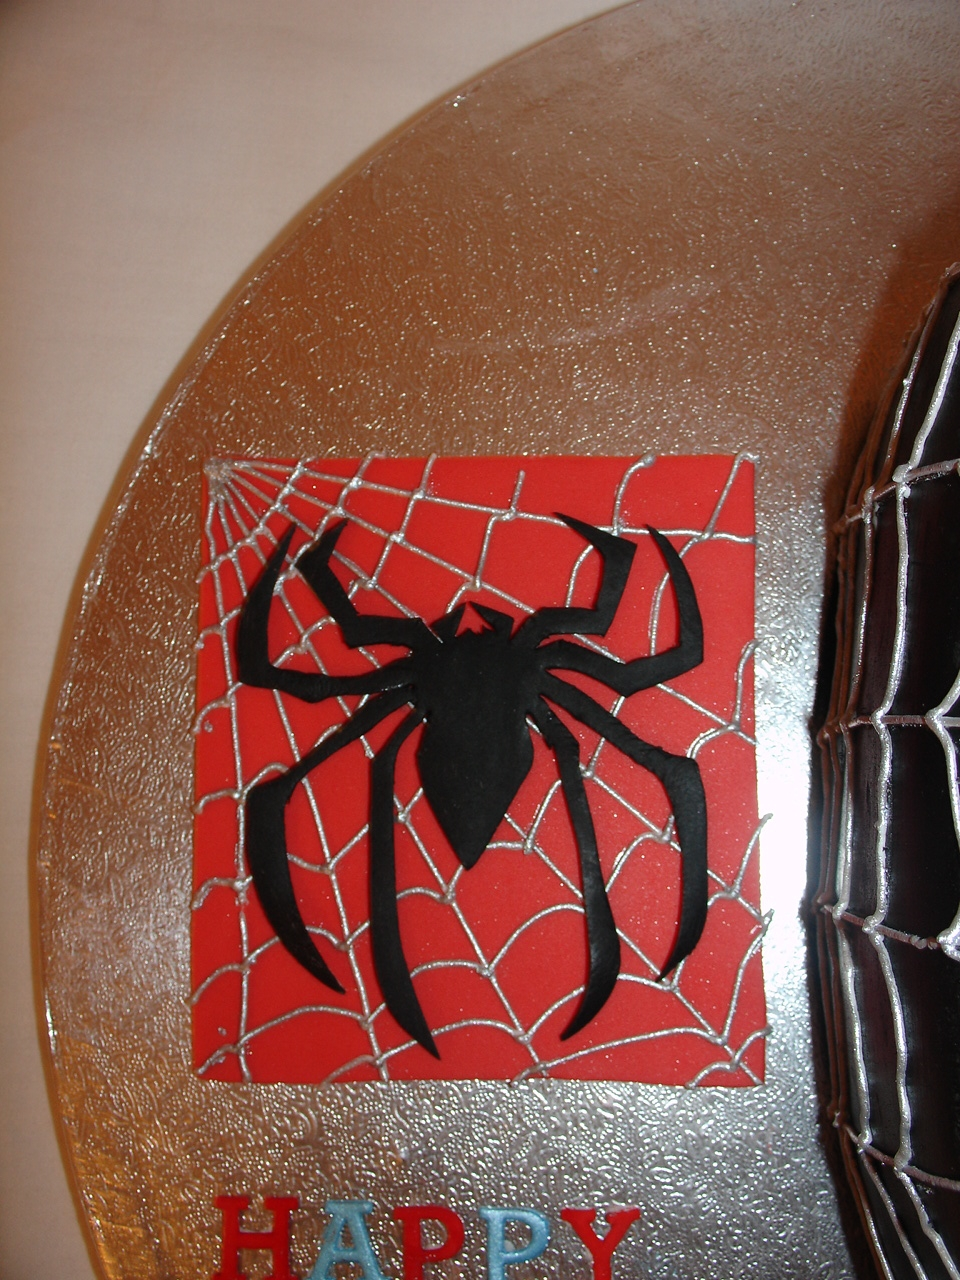 Black spiderman cakes - photo#53